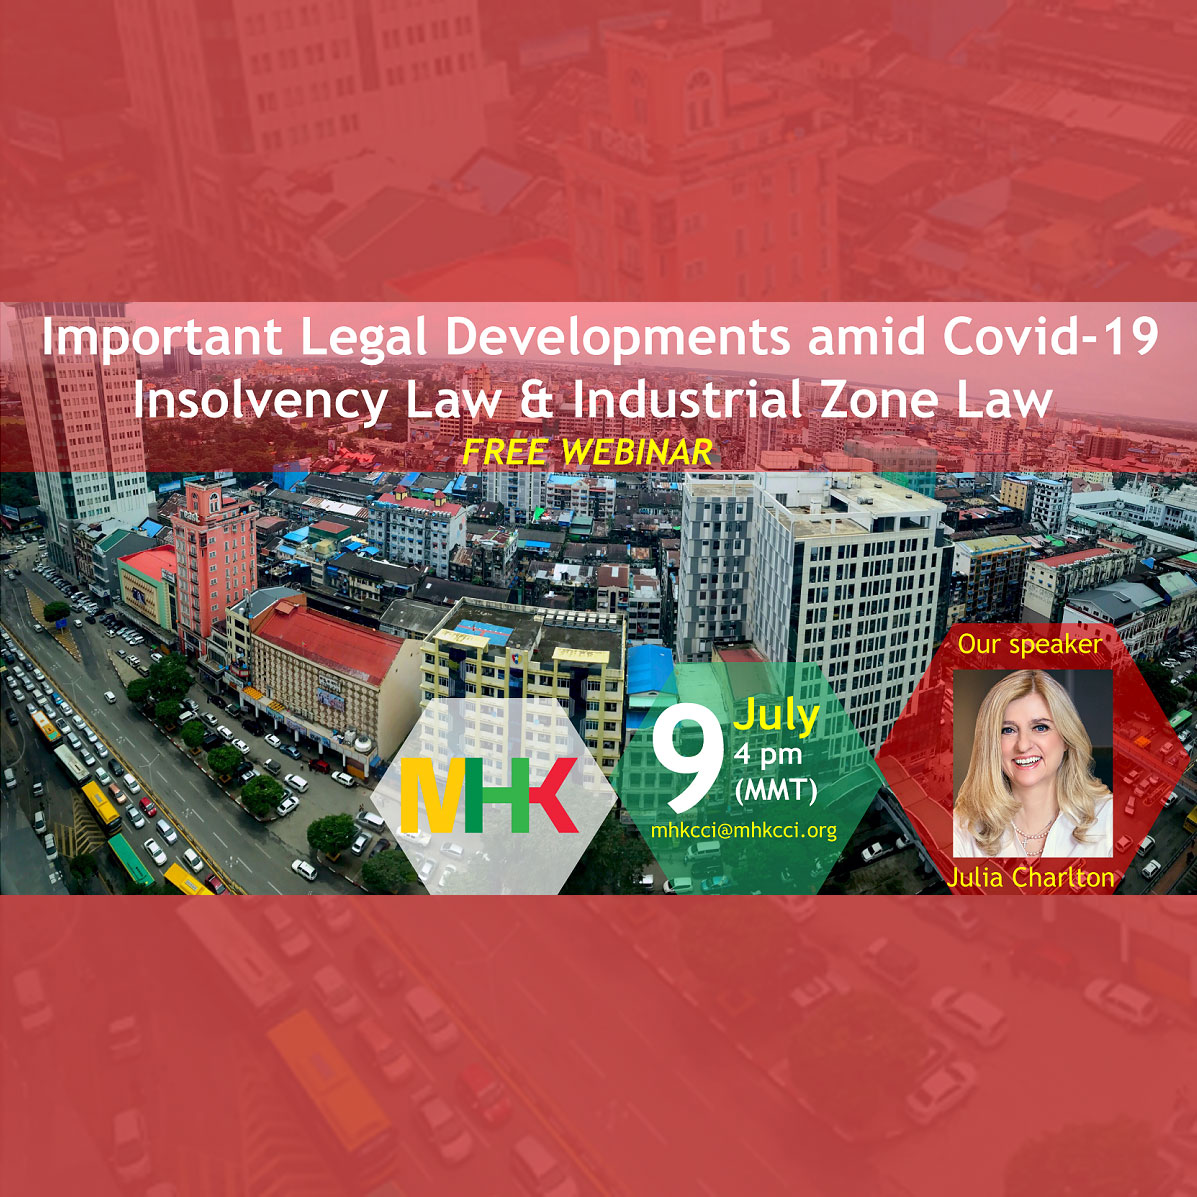 Webinar: Important Legal Developments Amid Covid-19: Insolvency Law & Industrial Zone Law